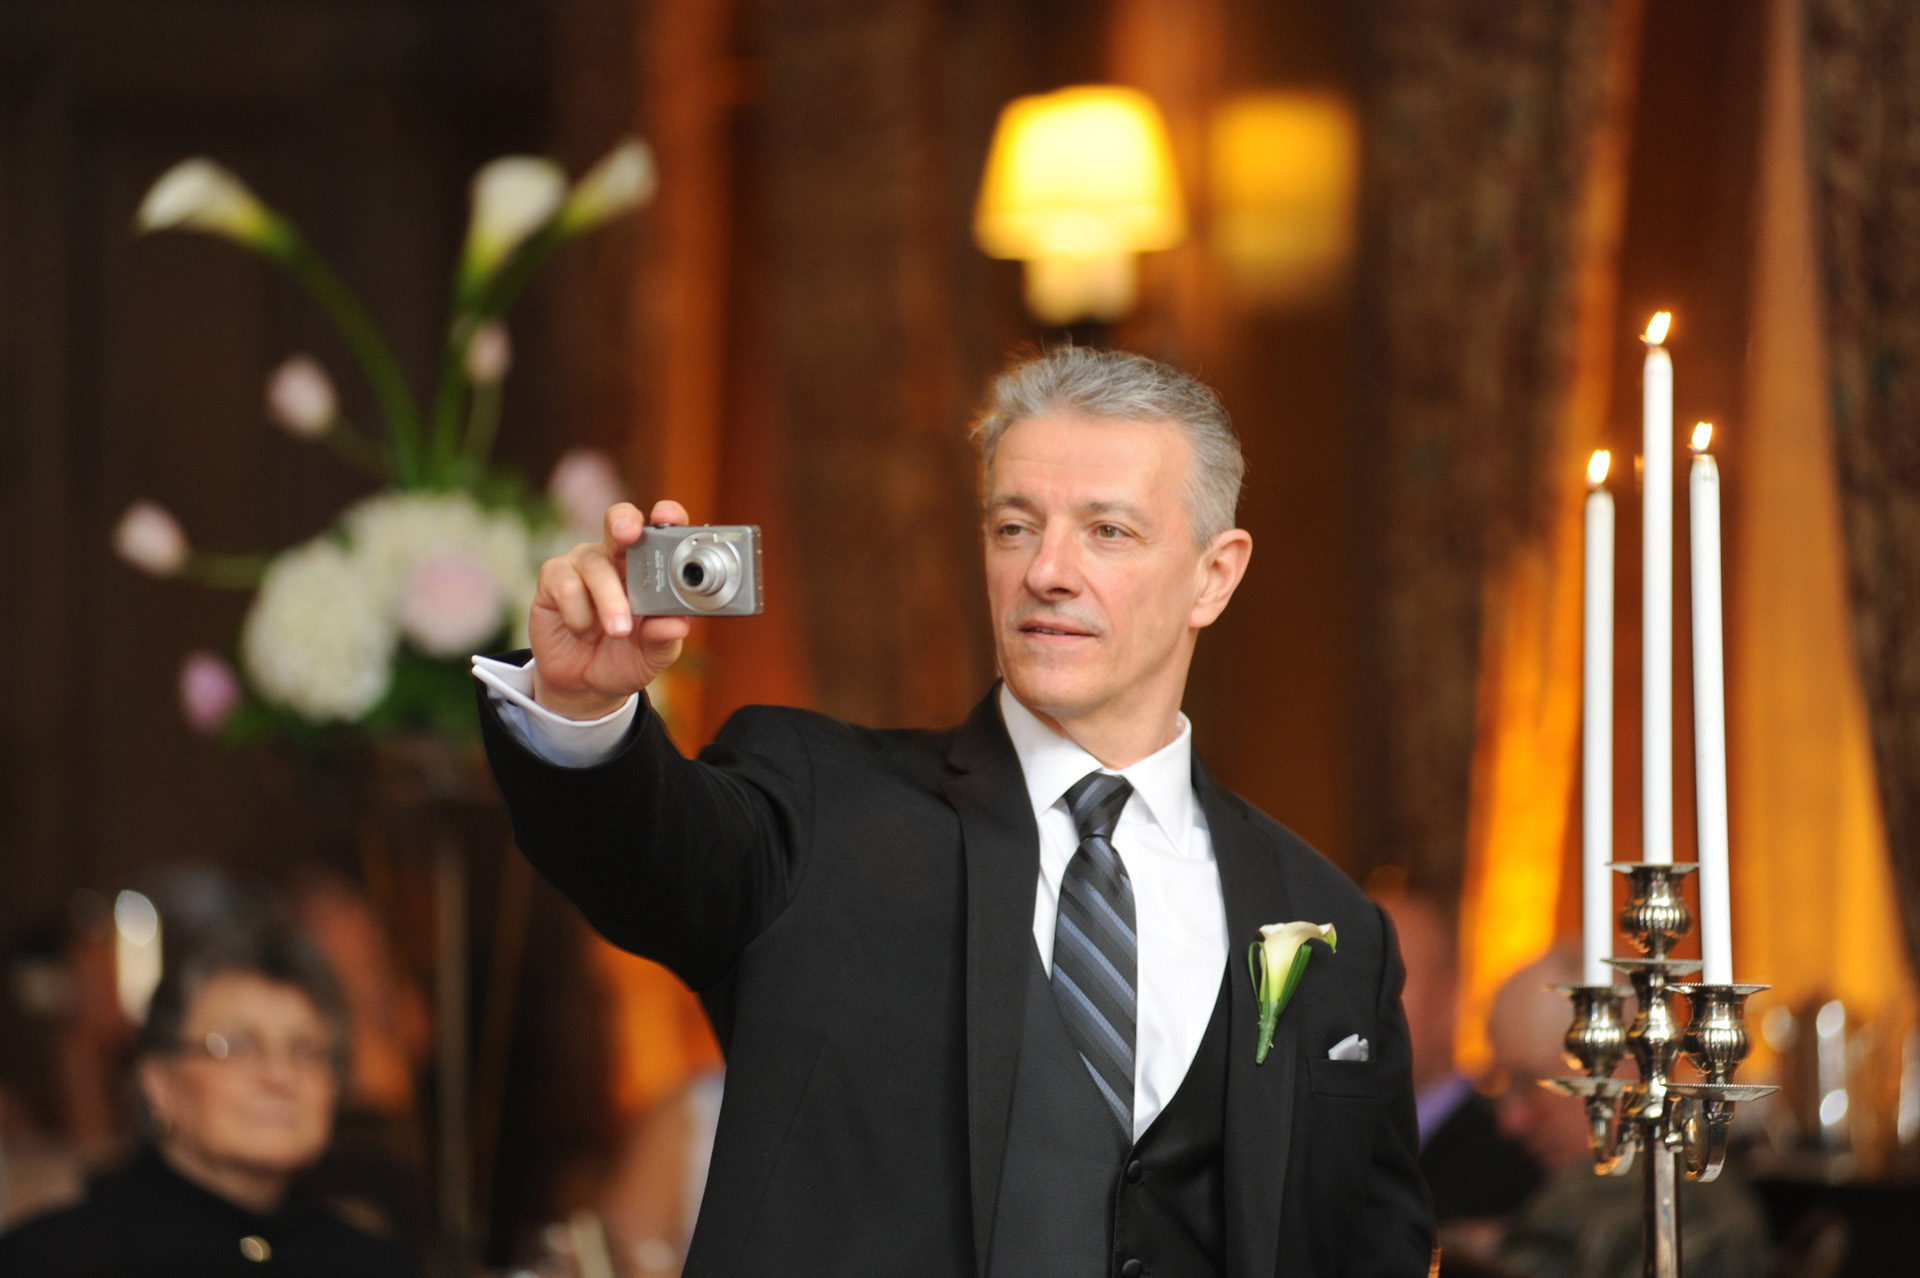 Michigan wedding in Detroit, Michigan, features the groom's father photographing the mother/son dance during the wedding reception at the Detroit Athletic Club.